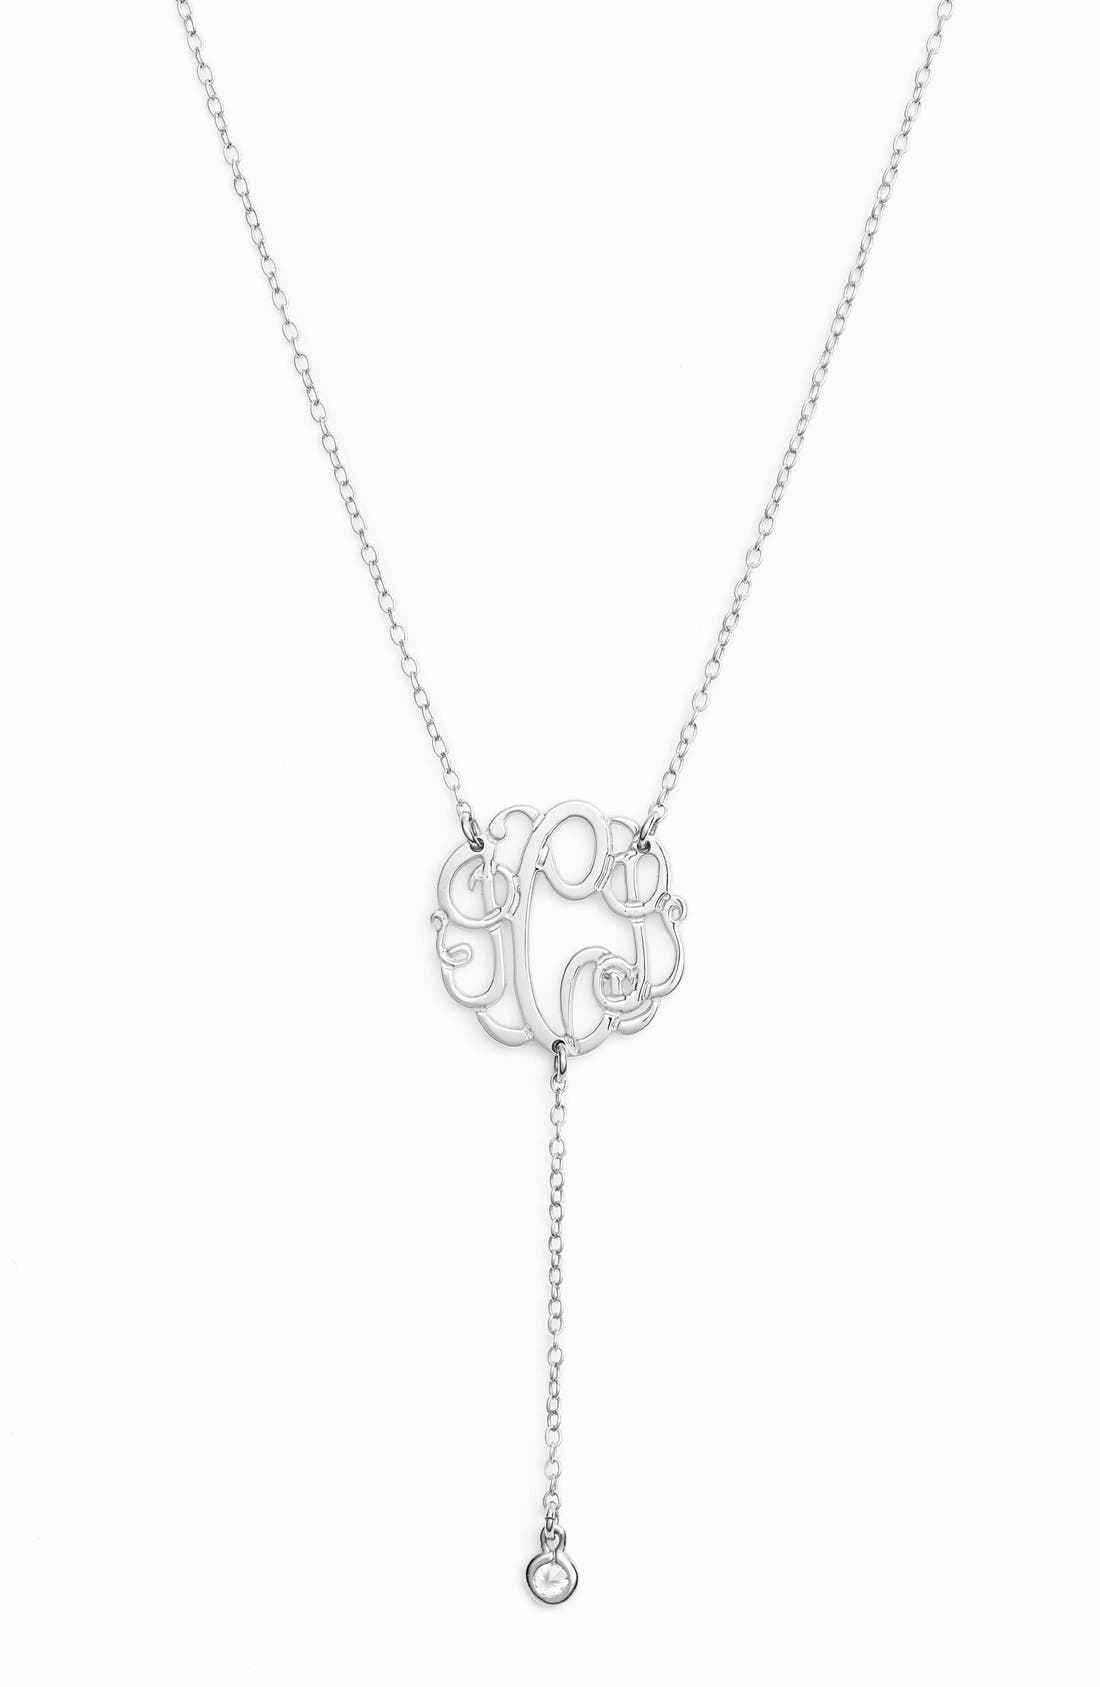 Personalized Three Initial Y-Necklace,                             Main thumbnail 1, color,                             040